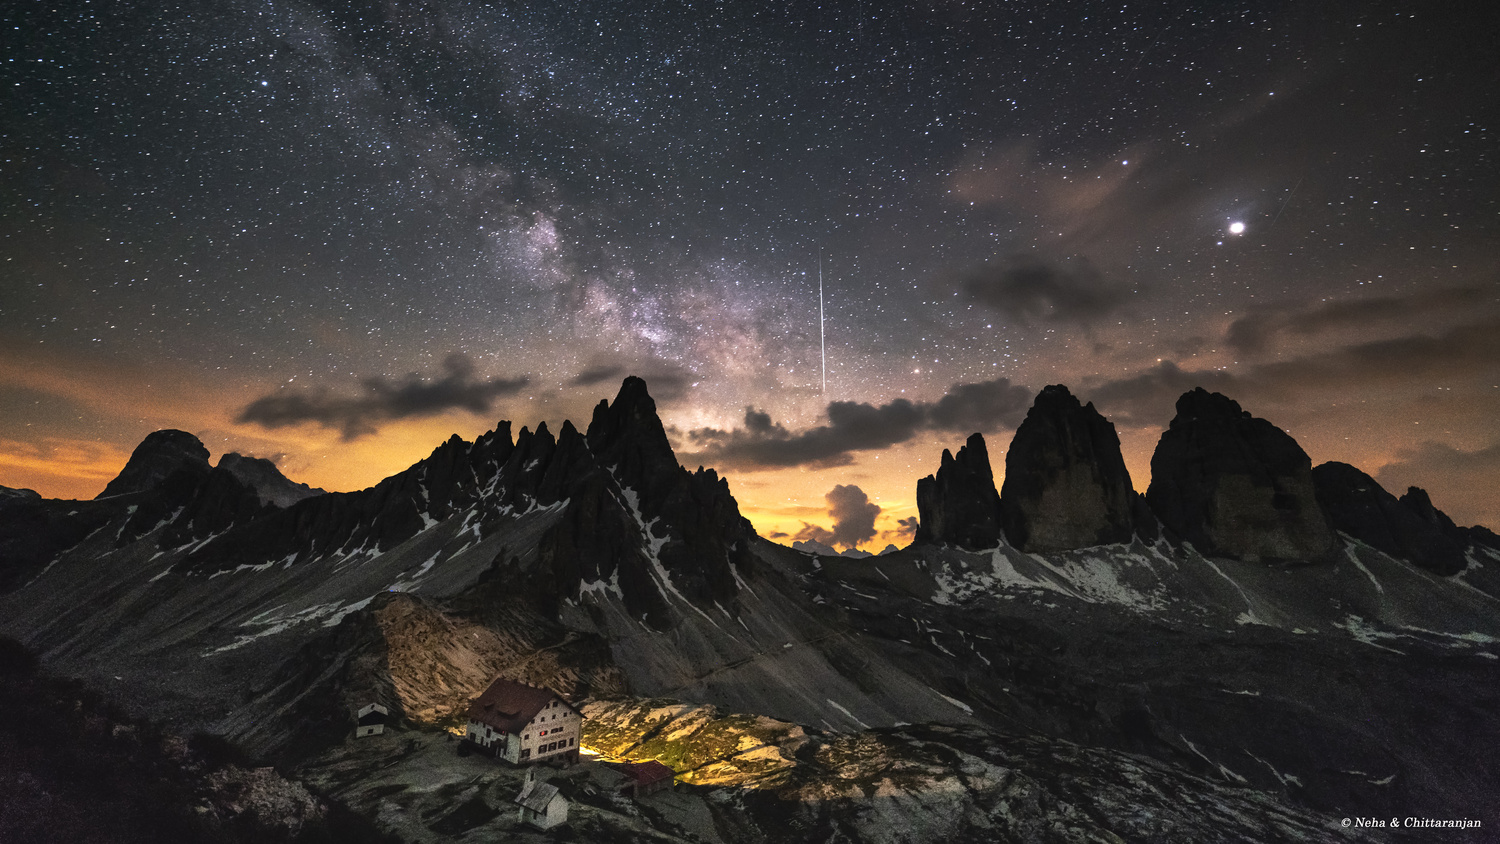 Milky Way & Meteor at the Tre Cime, Dolomites, Italy by Chittaranjan Desai